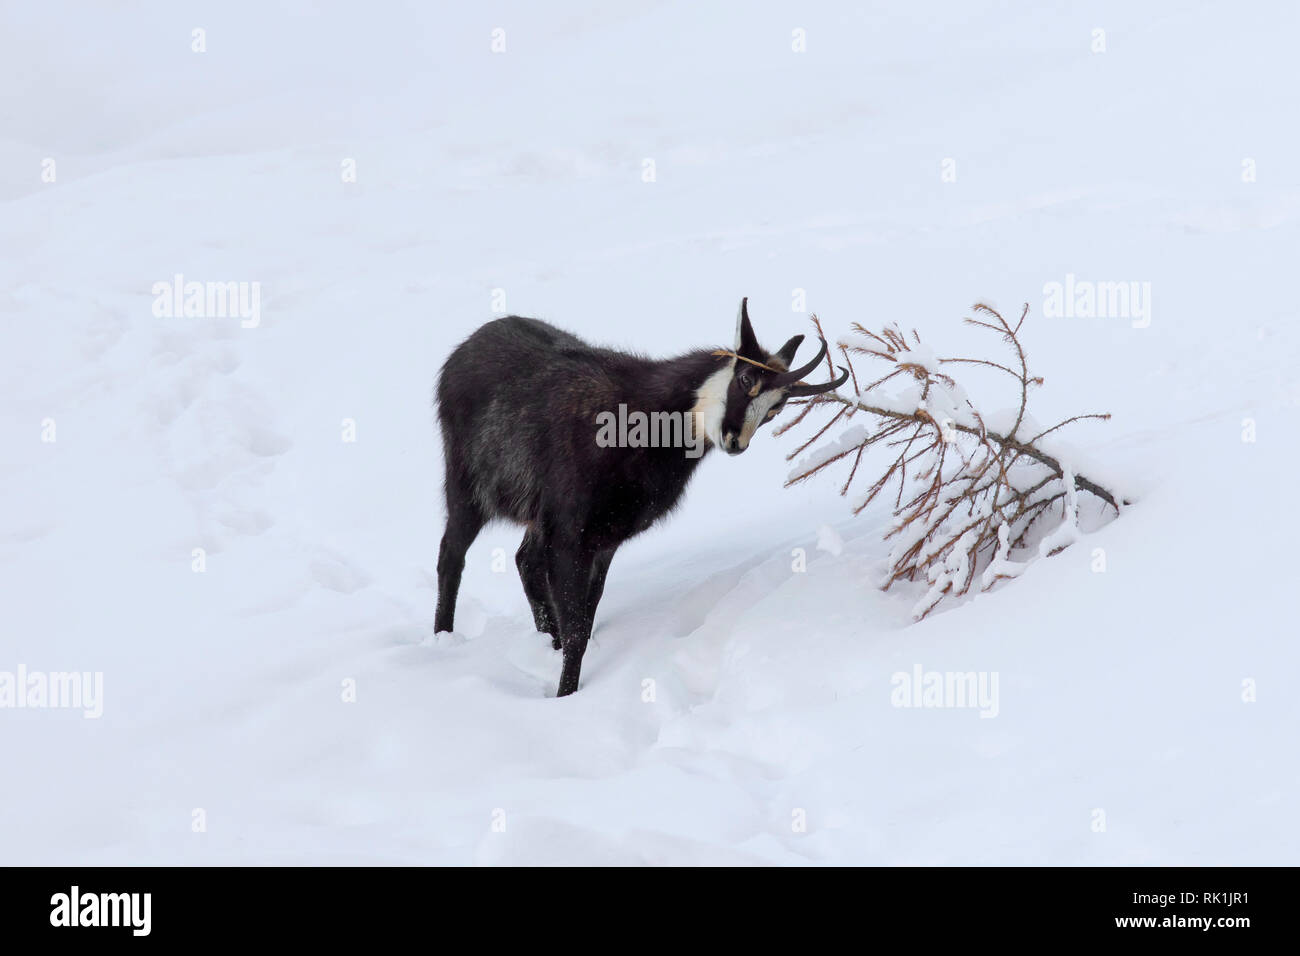 Chamois (Rupicapra rupicapra) male rubbing antlers against pine tree in the snow in winter during the rut in the European Alps - Stock Image